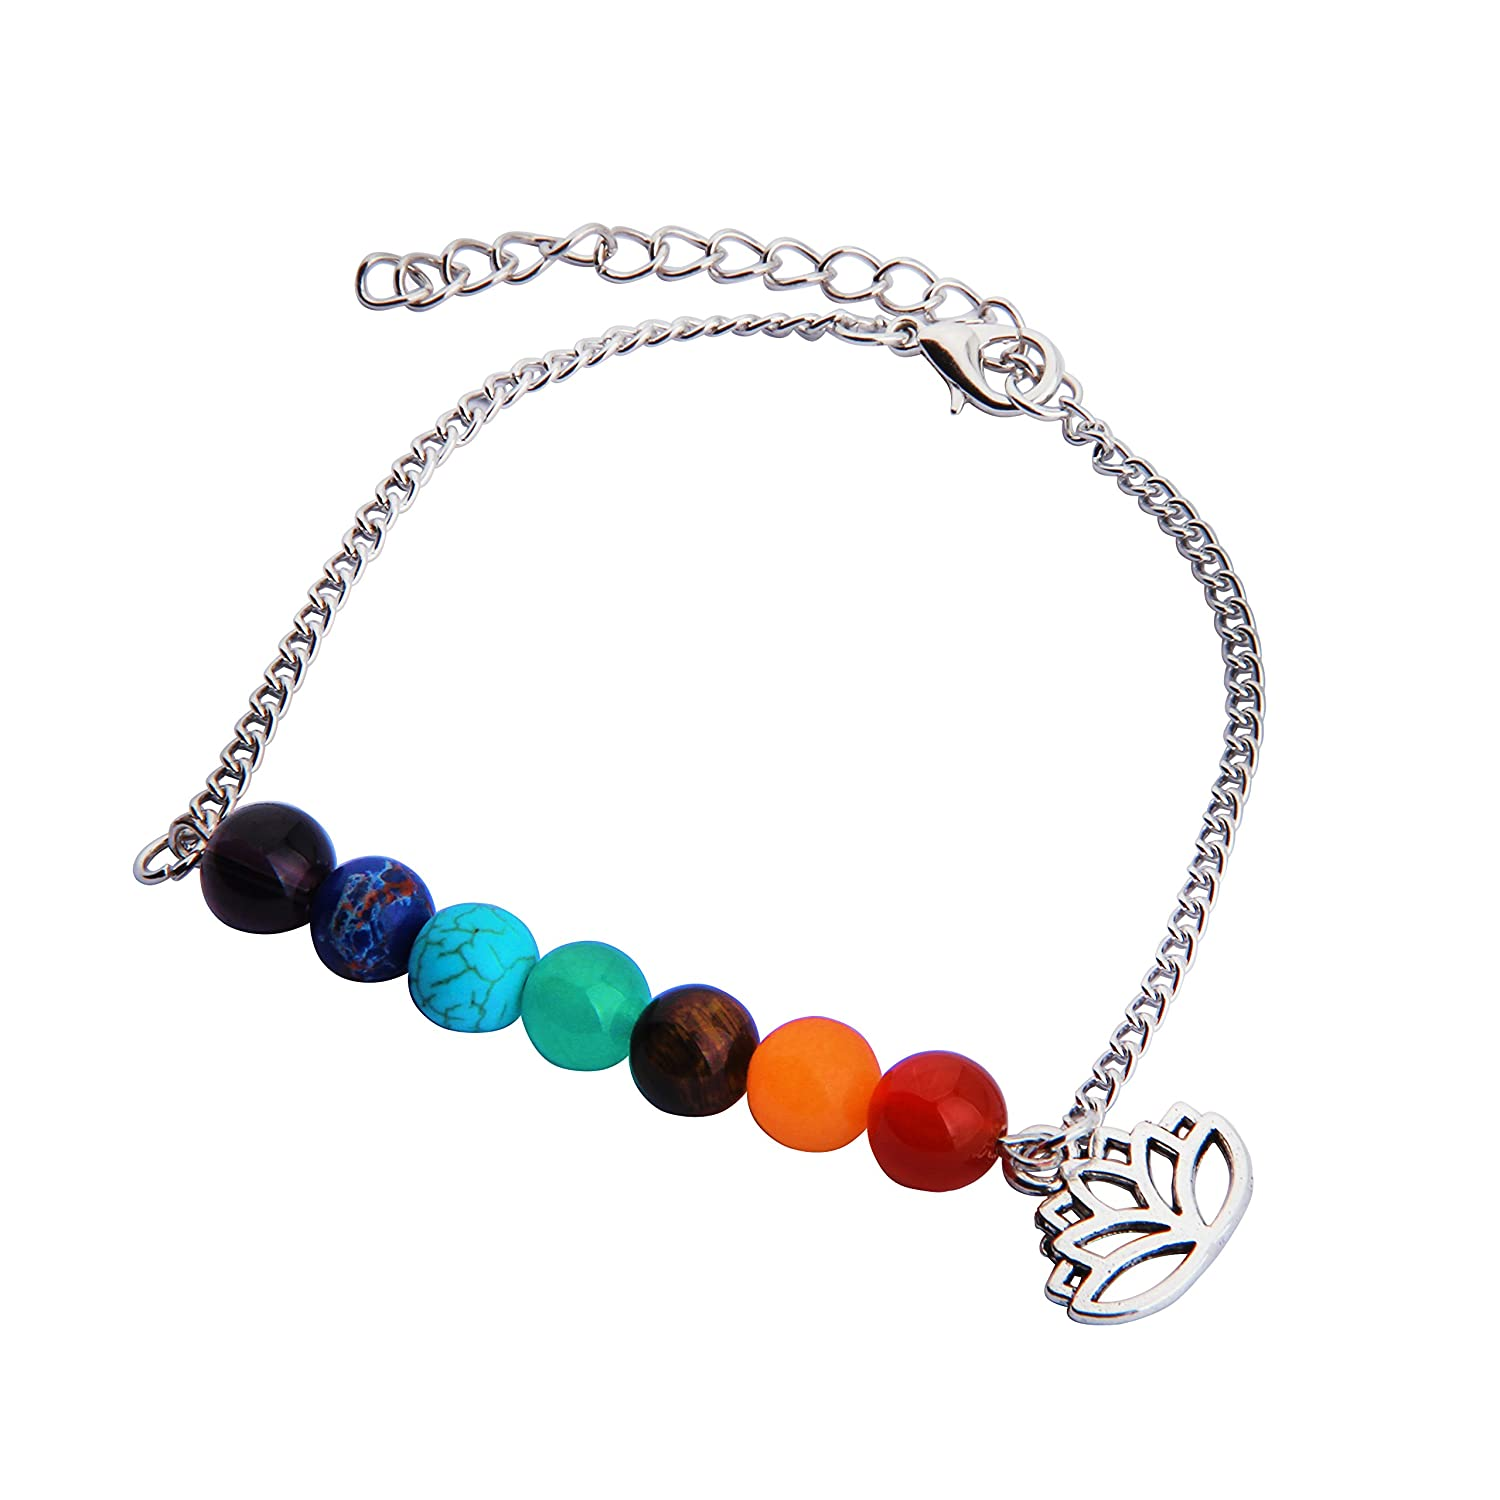 CHOROY 7 Chakra Yoga Jewelry Meditation Healing Beads Lotus Anklet with Lotus Charm Yoga Reiki Bangle for Woman